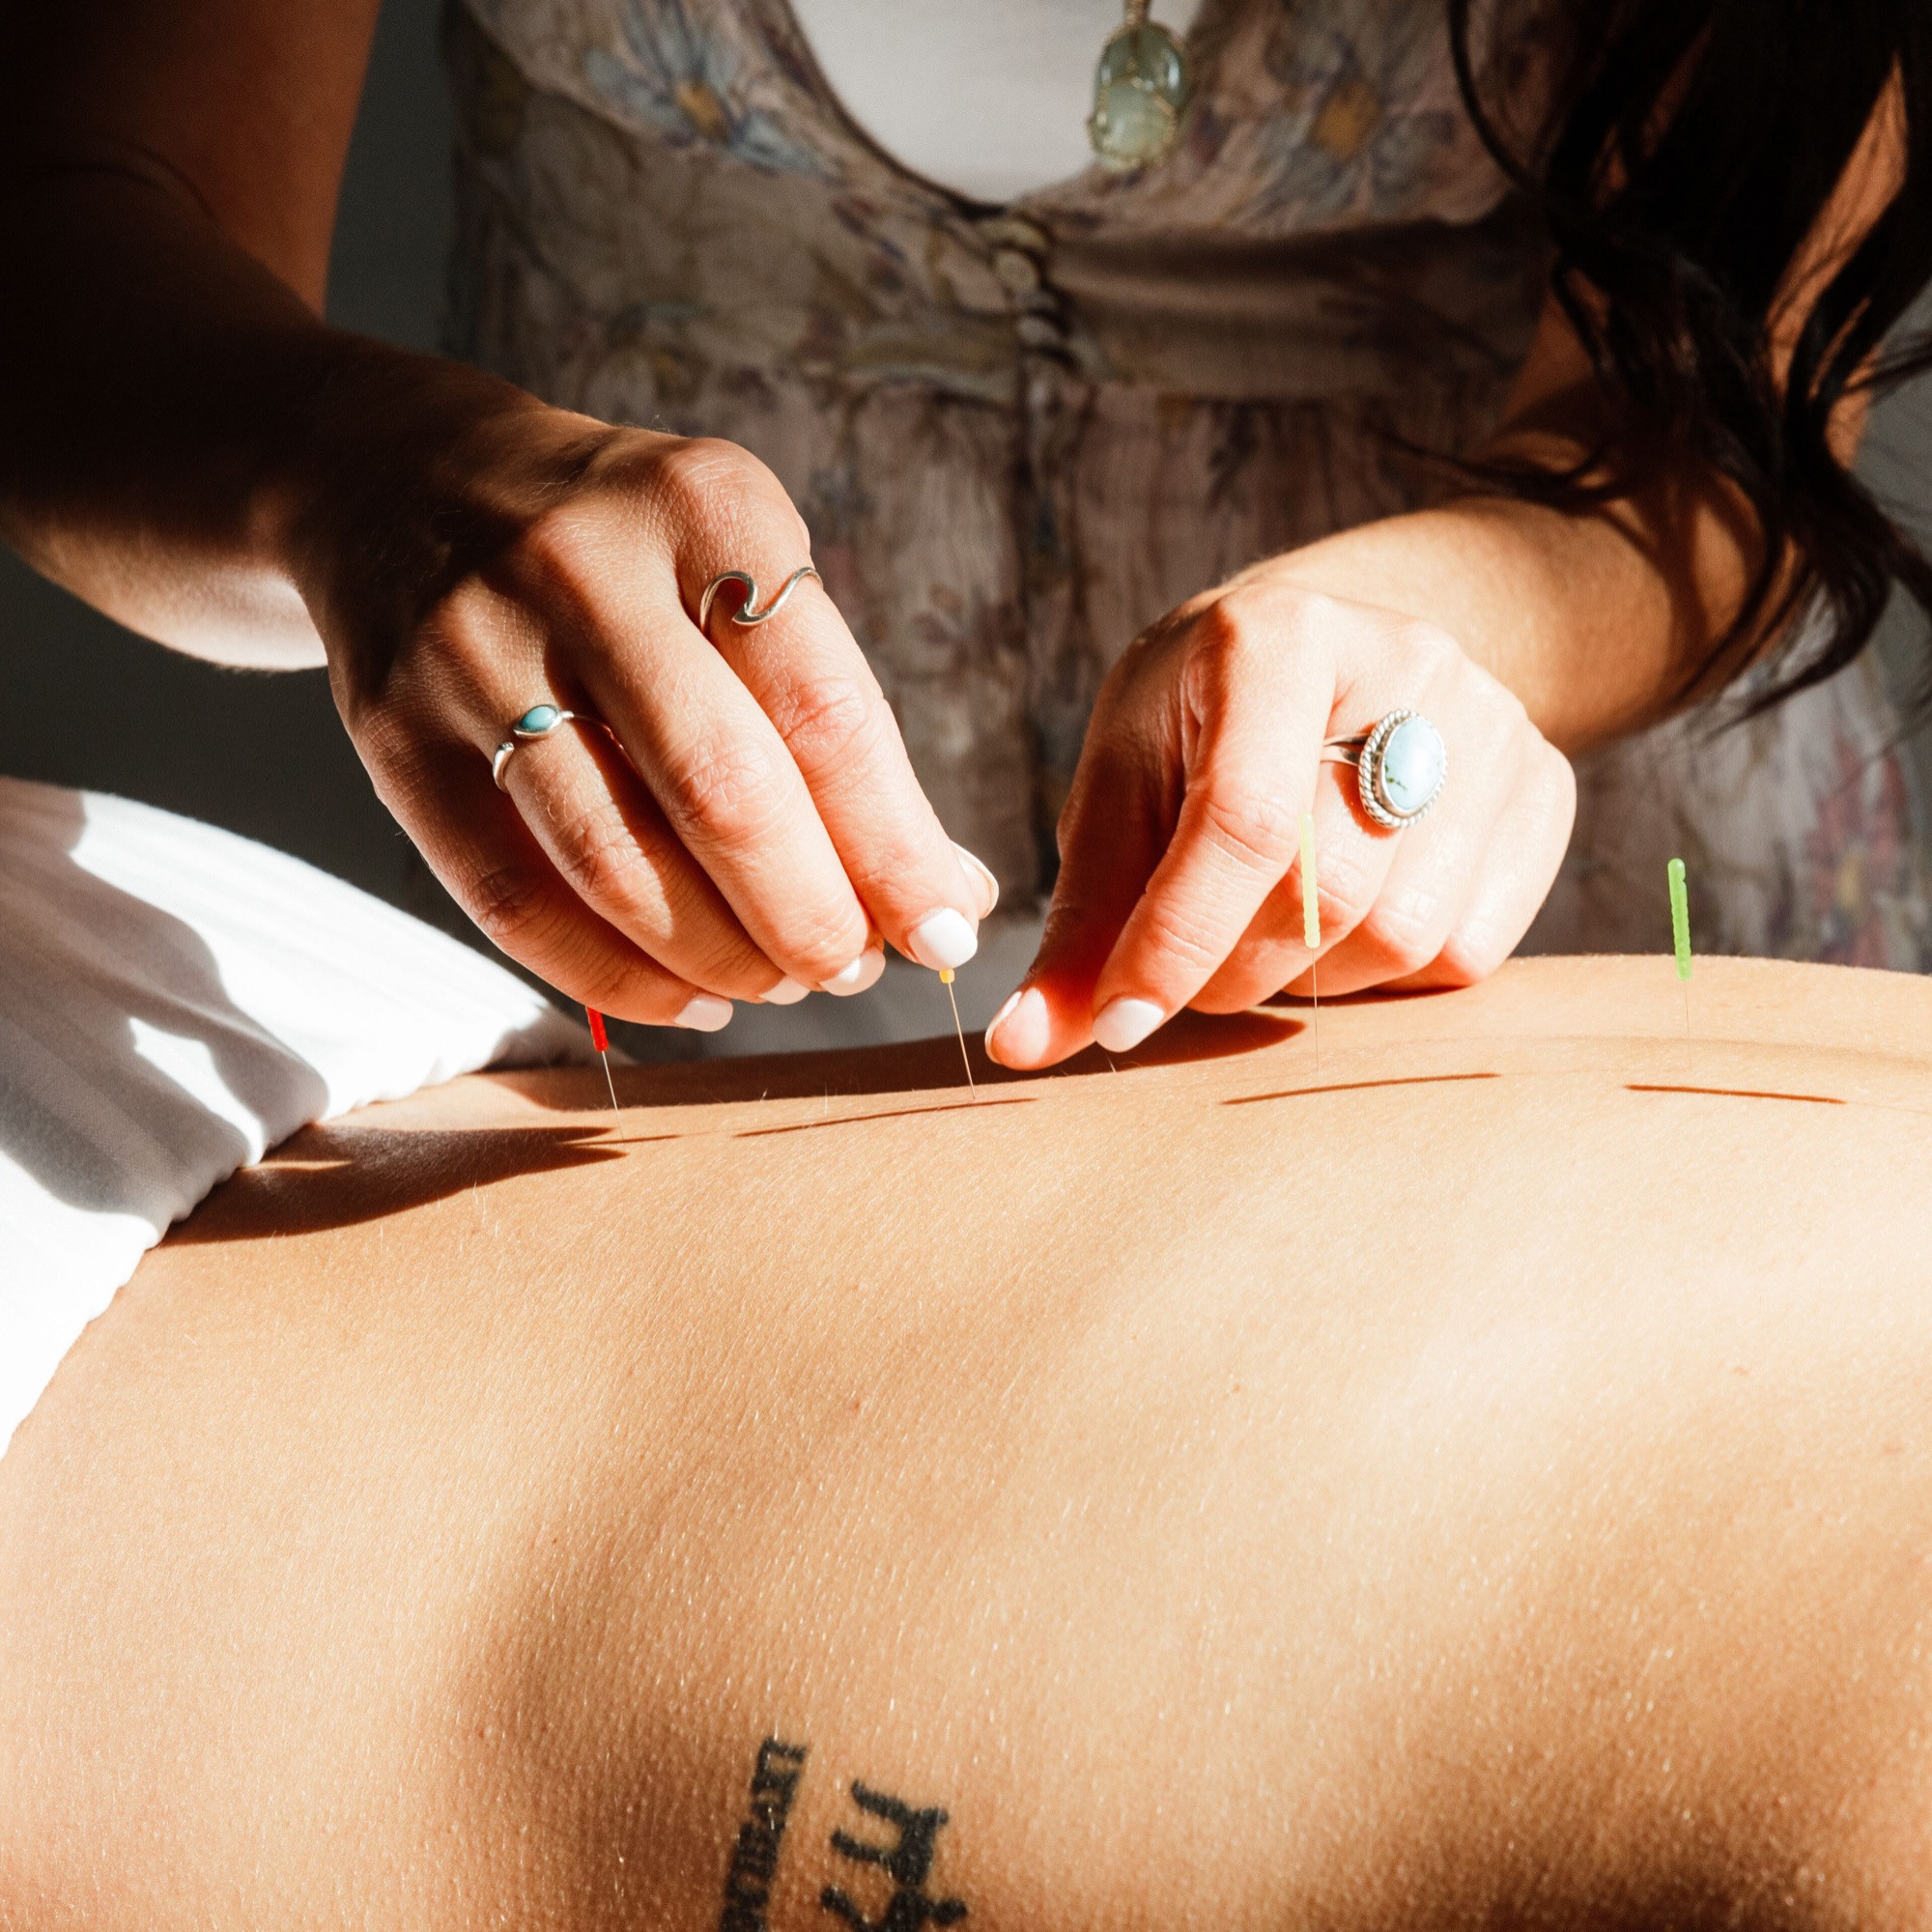 90 Min Acupuncture, Cupping, Bodywork